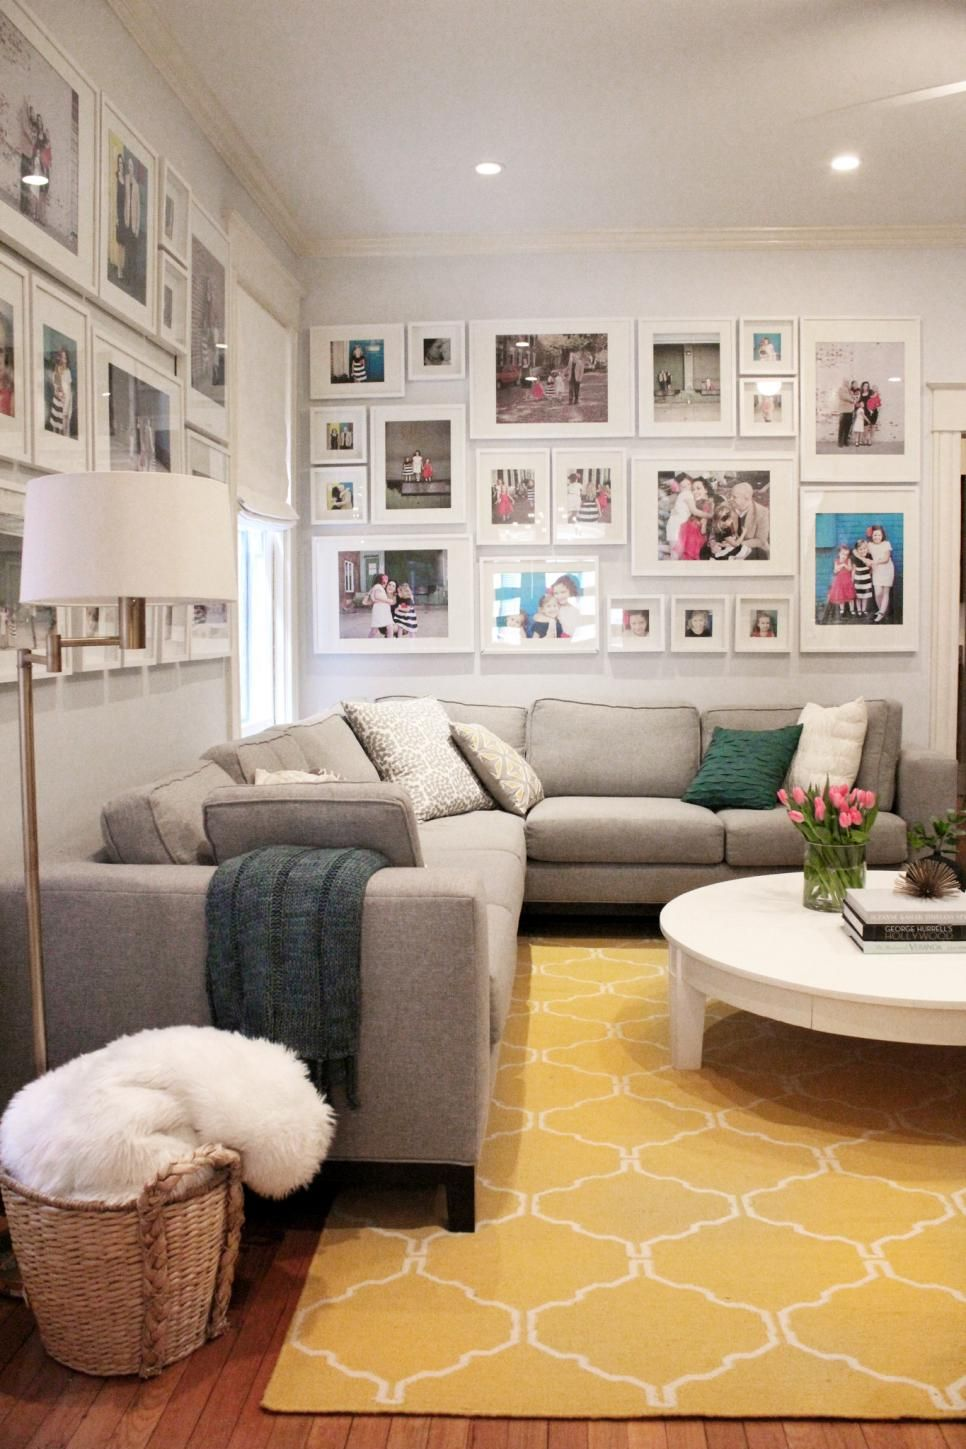 Designer Tips for Cozying Up Your Living